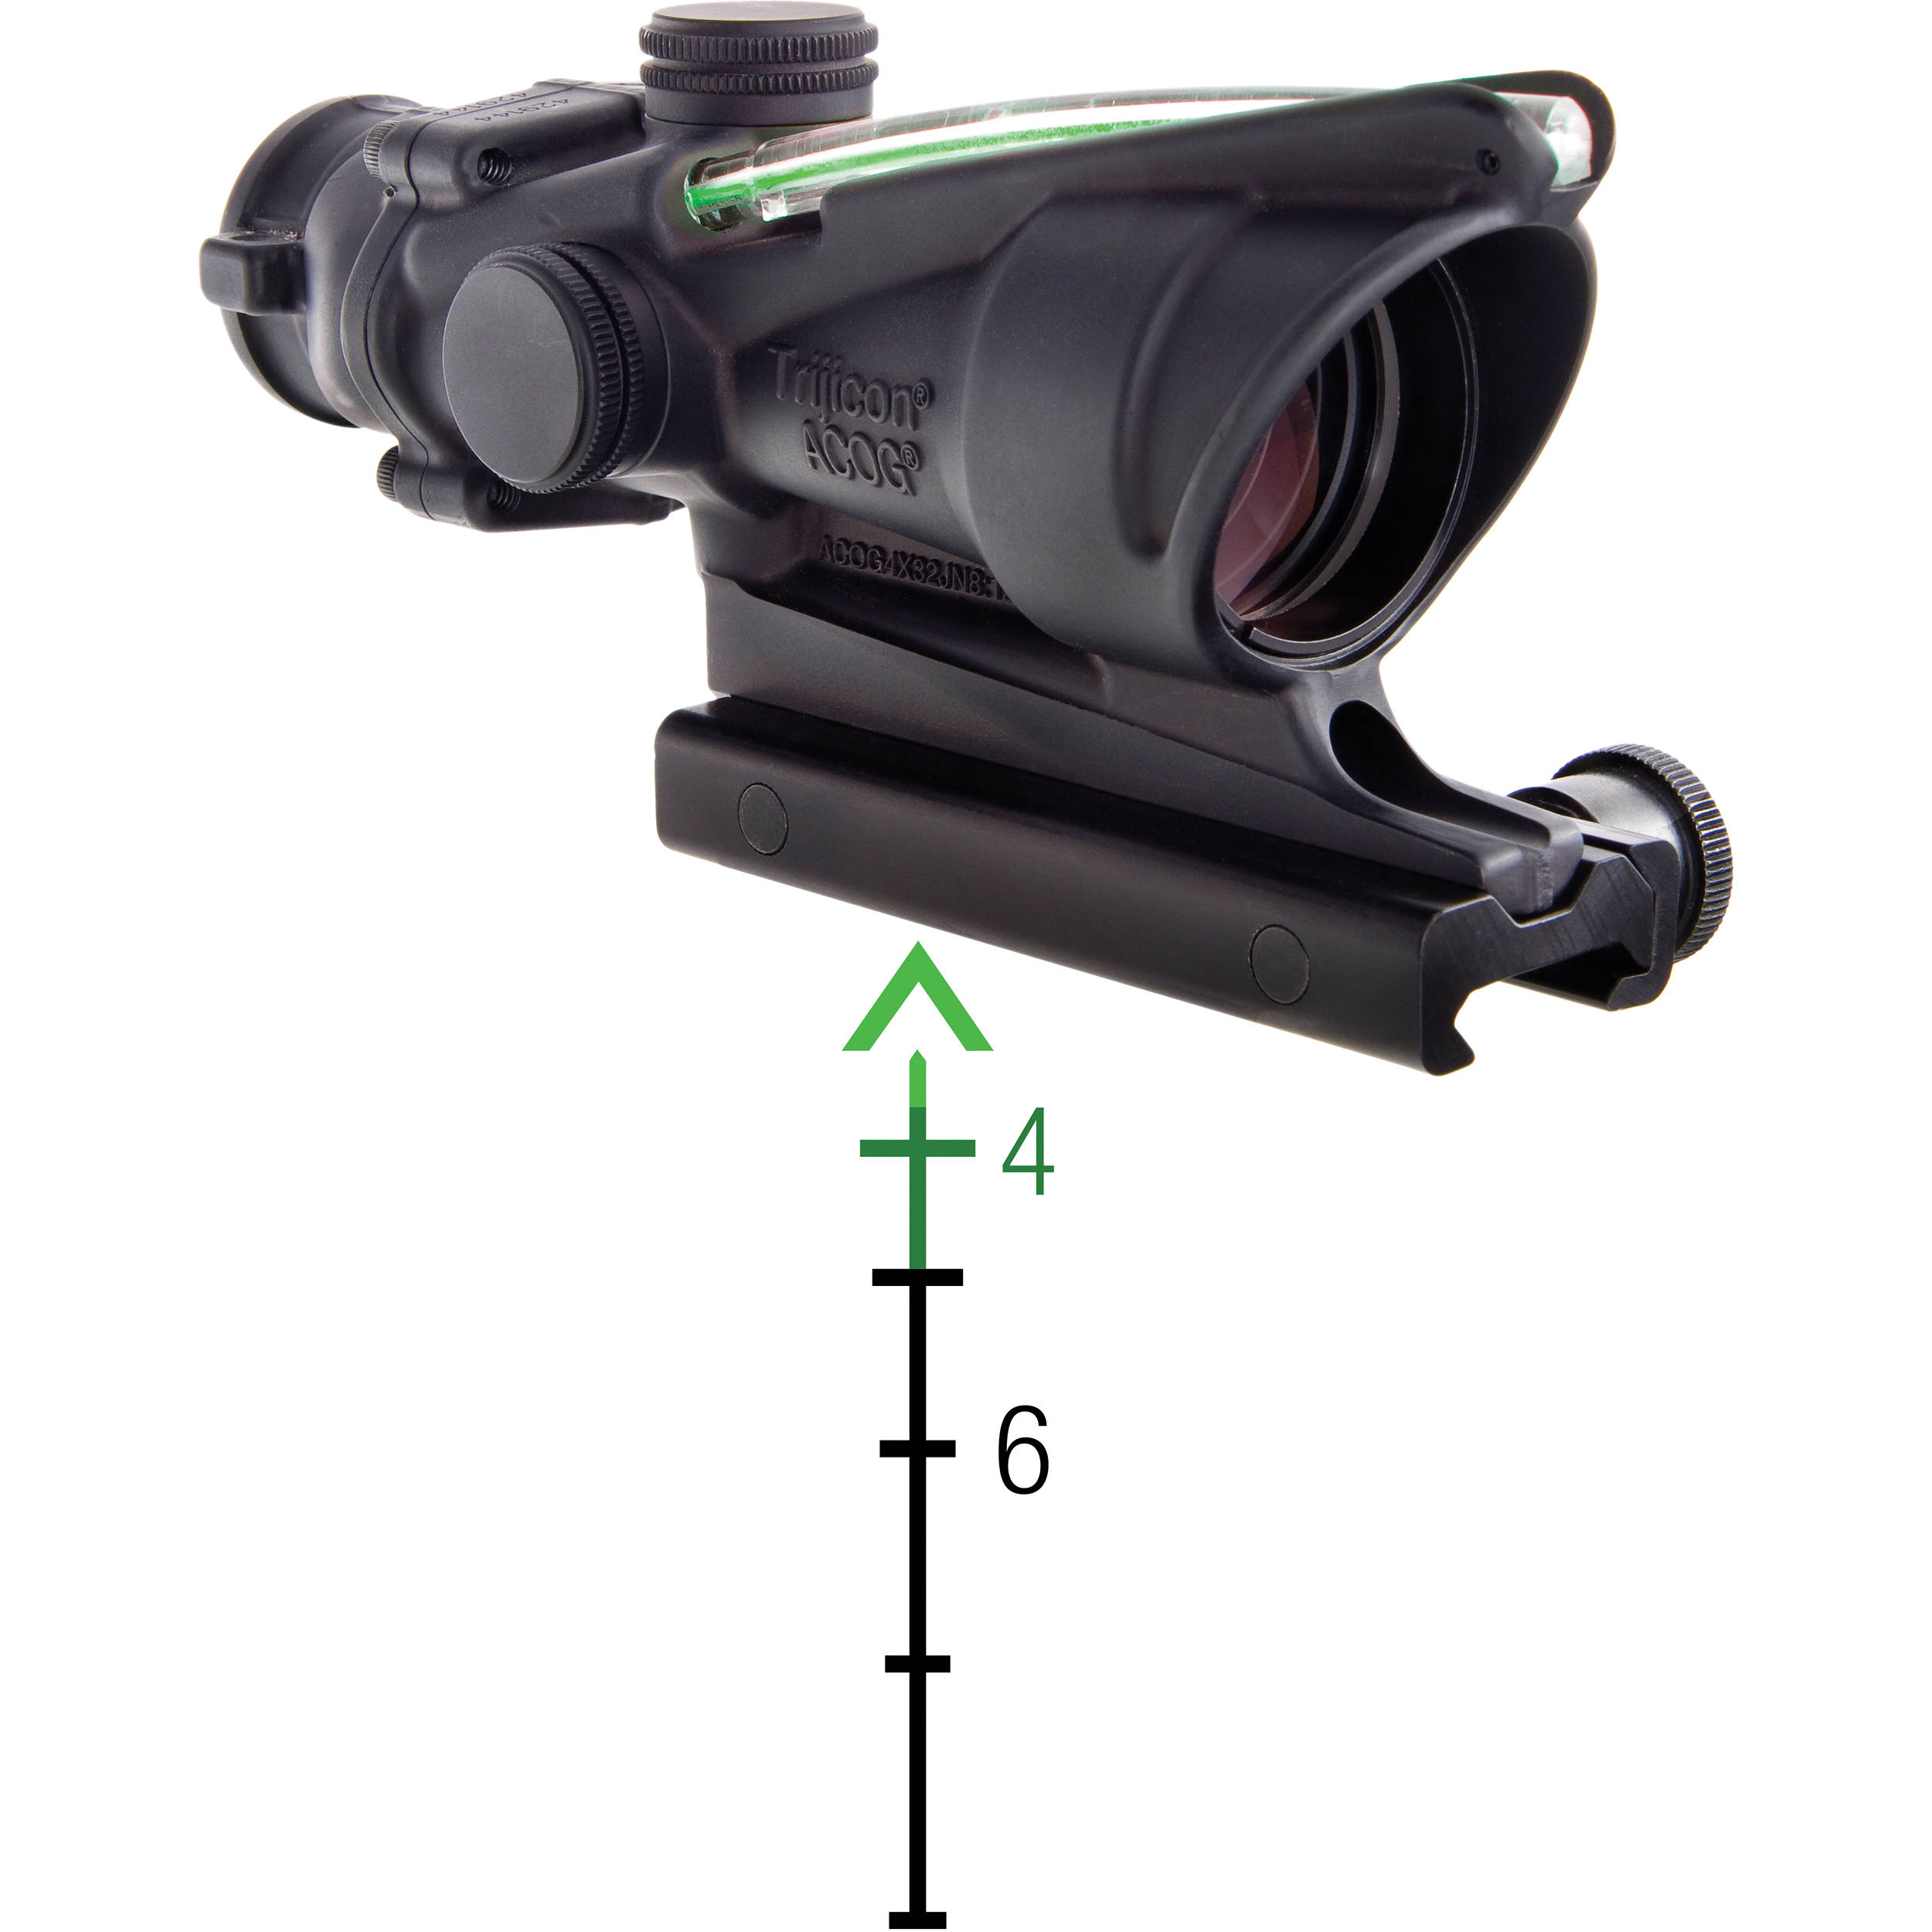 trijicon 4x32 acog riflescope dual illumination ta31 d 100290